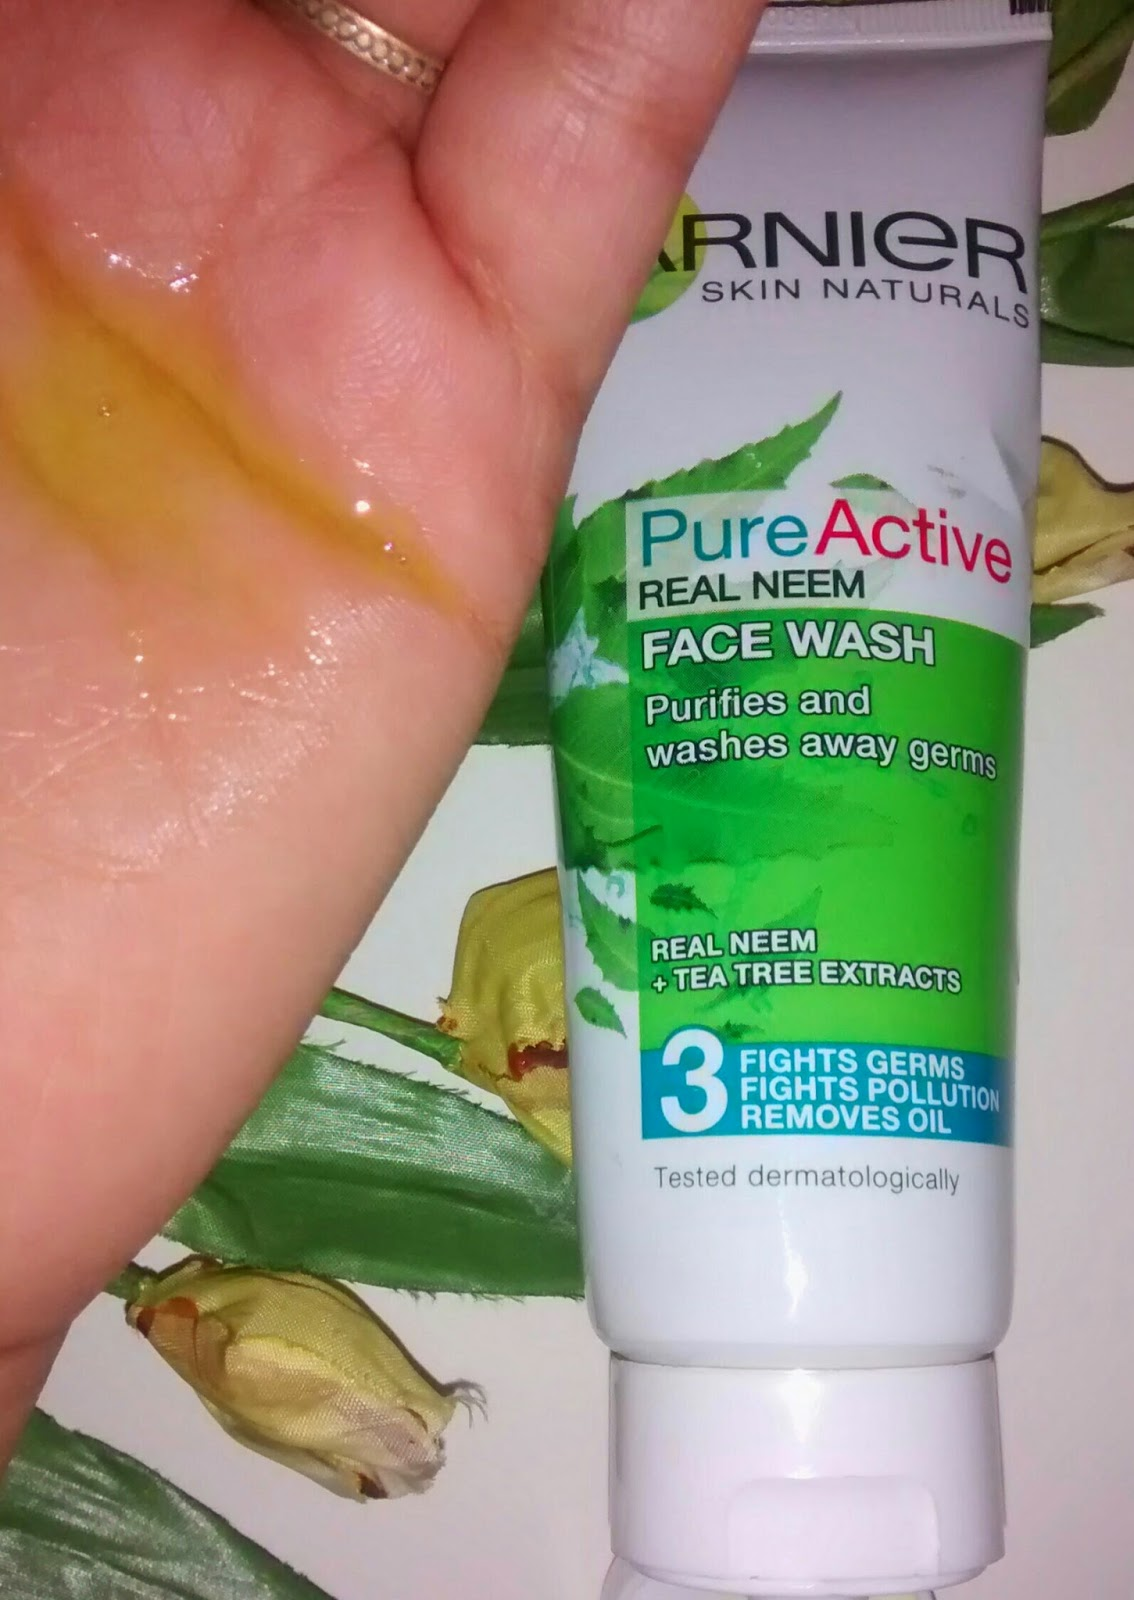 Garnier Pure Active Real Neem Face Wash